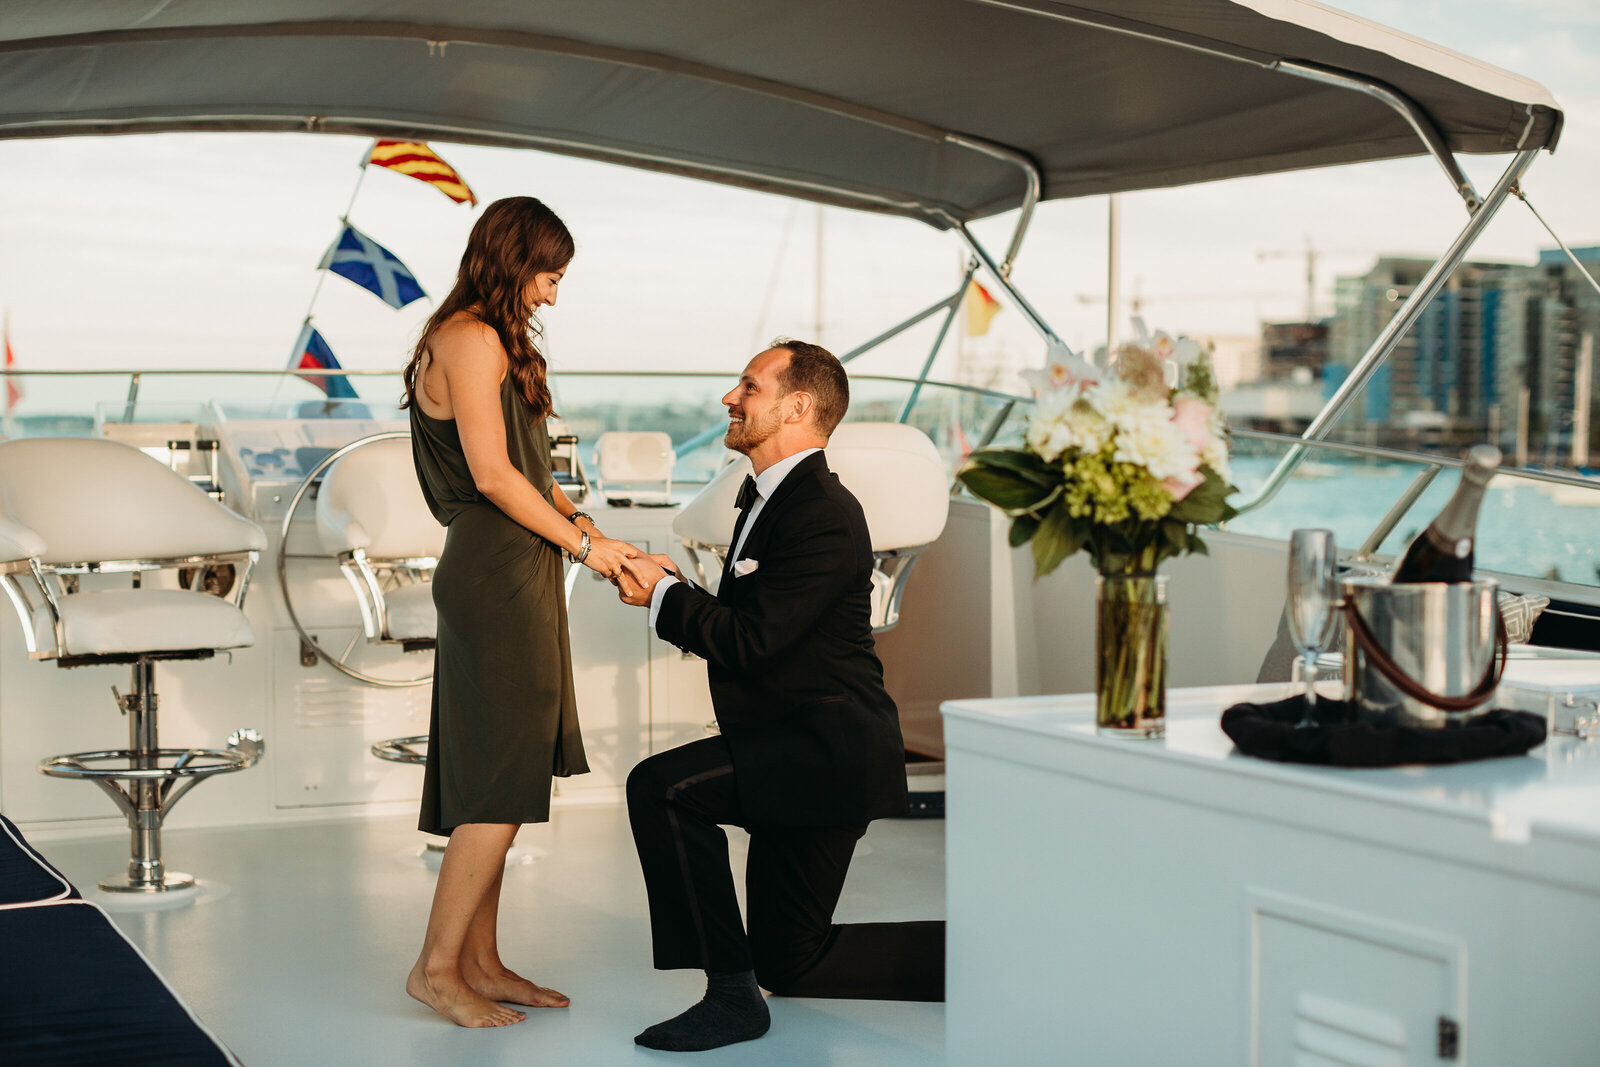 man proposes to woman on a yacht in boston harbor